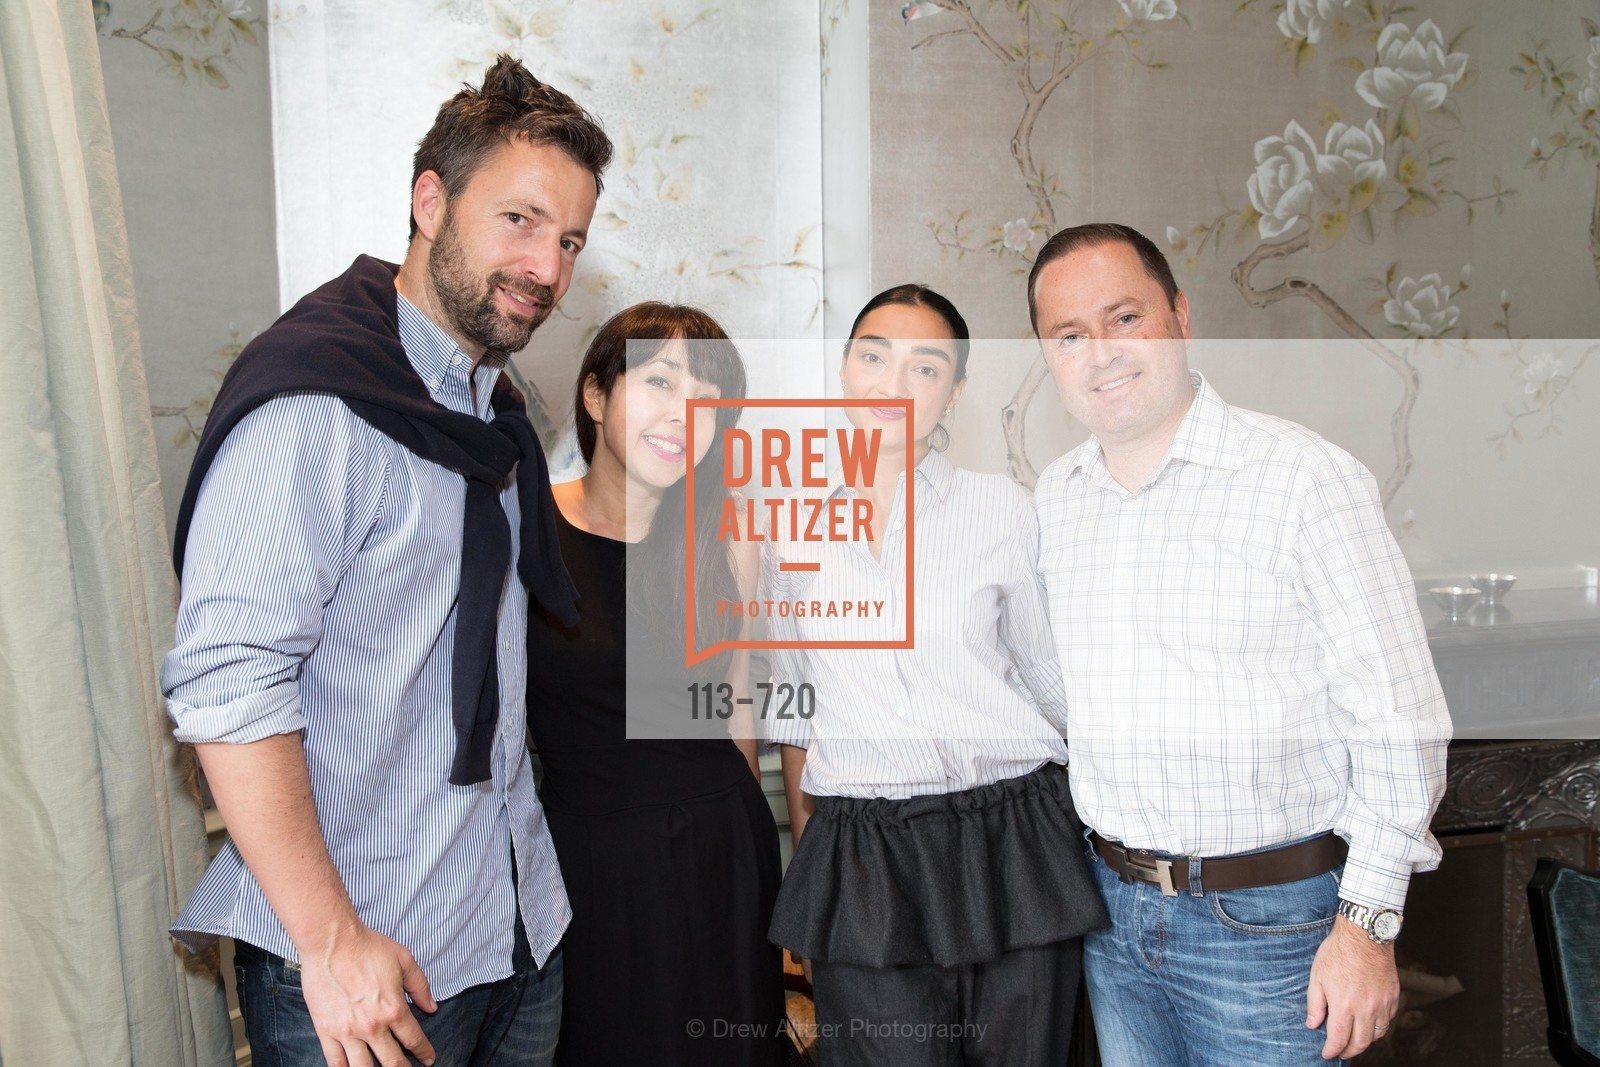 Andreas Kuefer, Jodie Nakatsuka, Olya Dubrovsky, Edward Dubrovsky, C MAGAZINE Editors Cocktail Party, US, May 13th, 2015,Drew Altizer, Drew Altizer Photography, full-service agency, private events, San Francisco photographer, photographer california